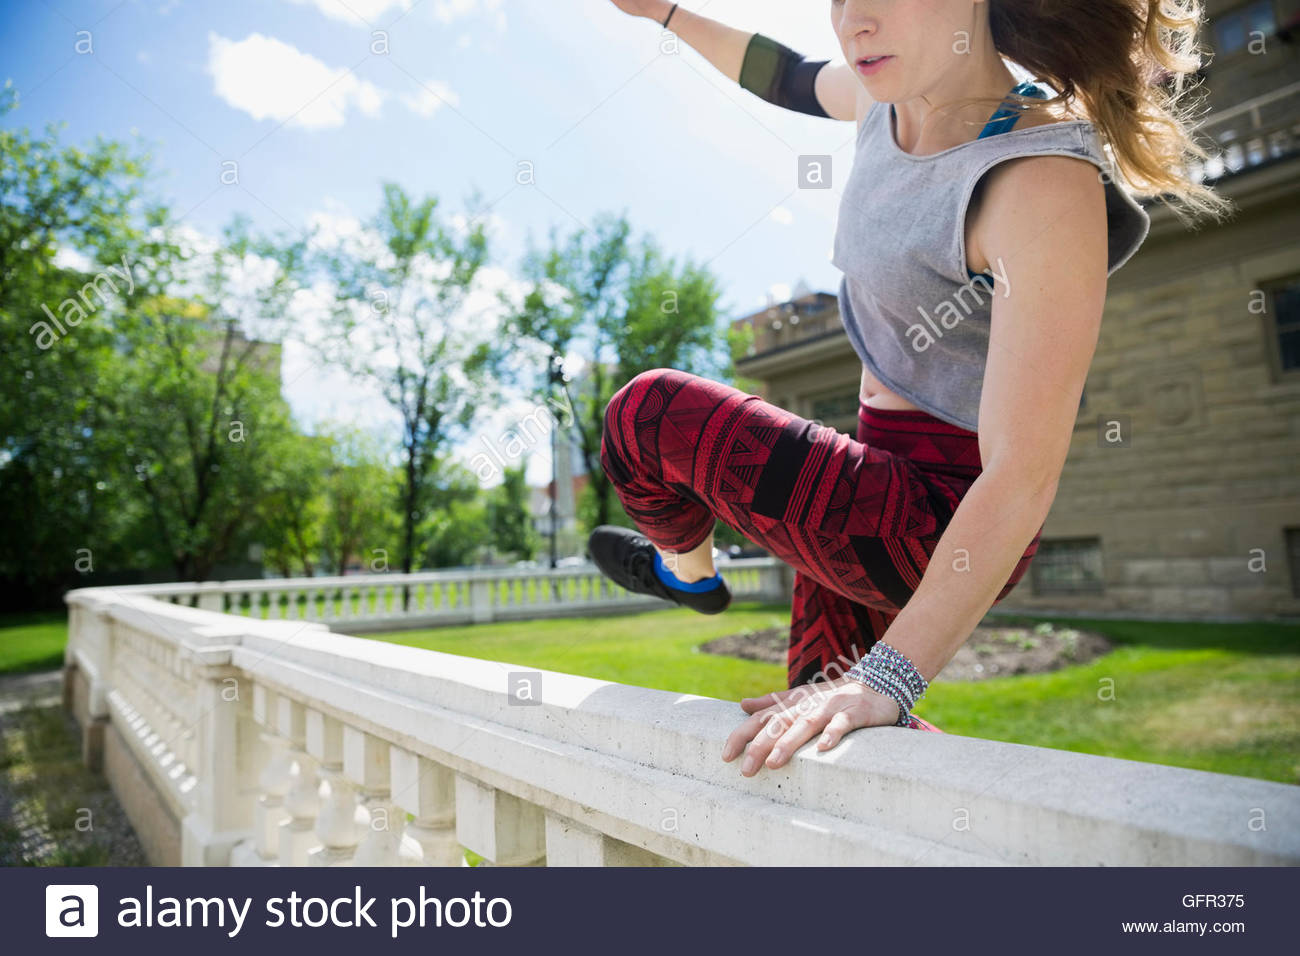 Young woman doing parkour jumping over railing - Stock Image